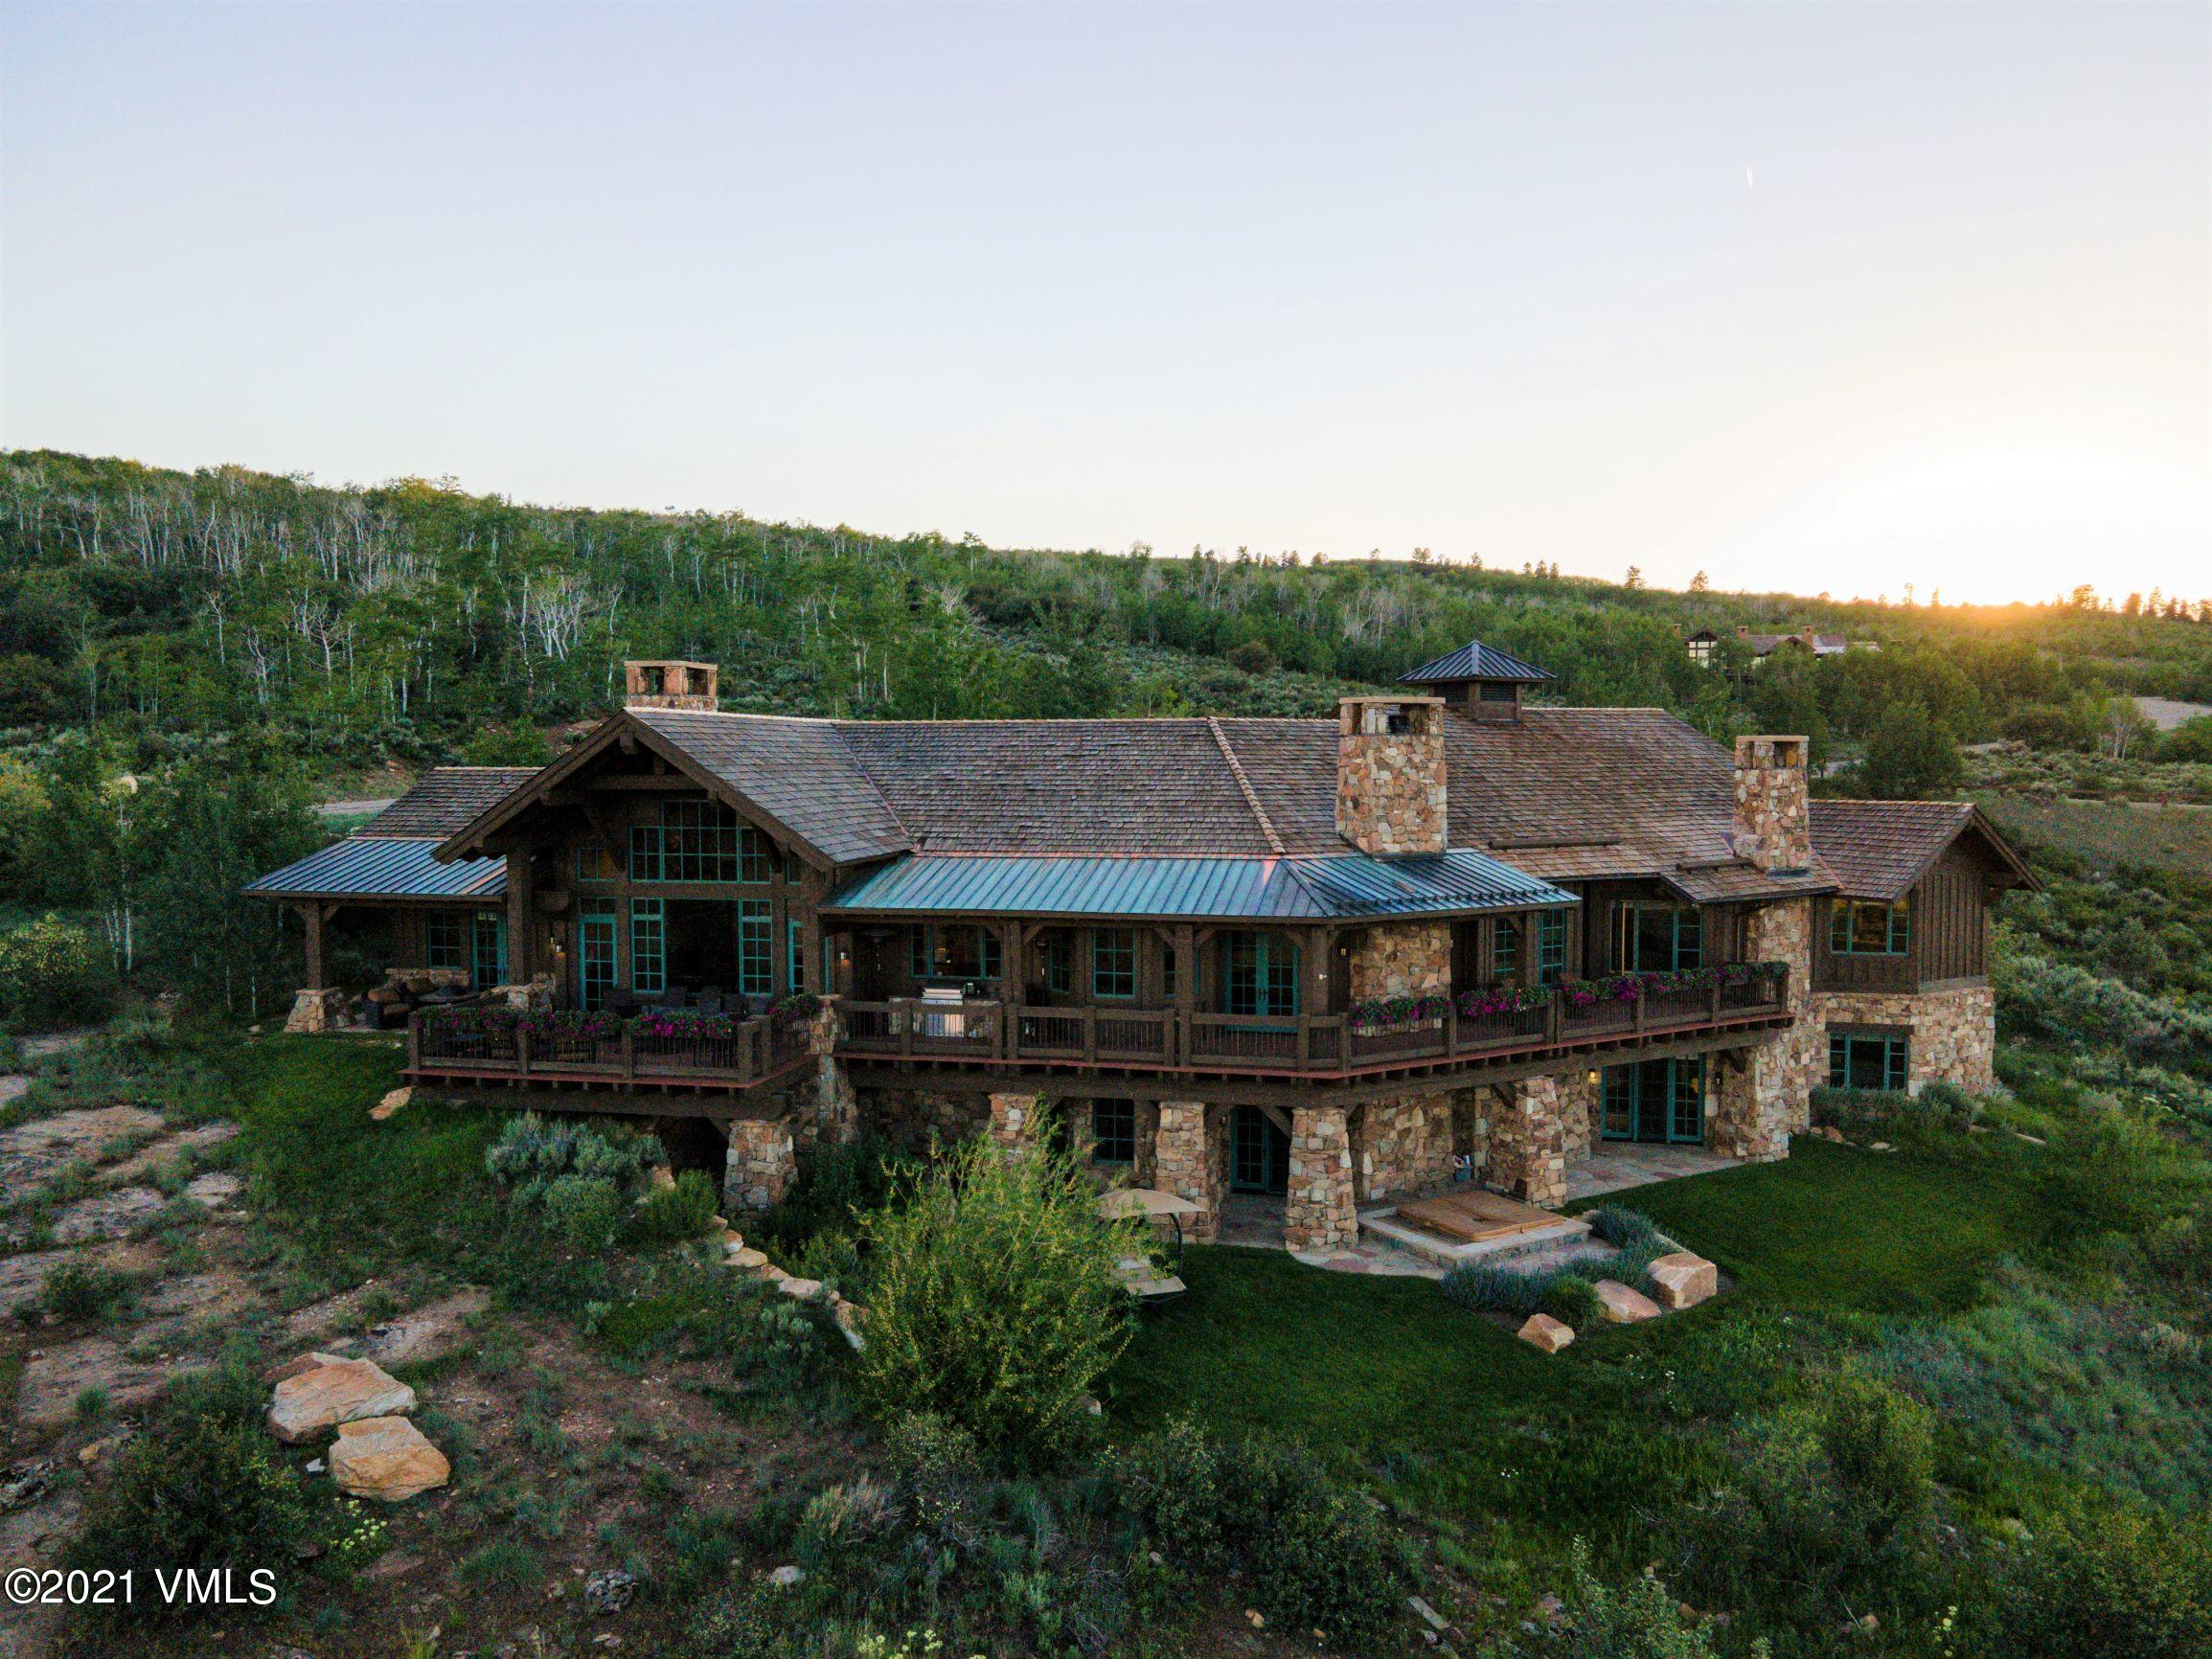 Presenting 50 Eagle Feather, Red Sky Ranch!  Here is a unique opportunity for you to own a stunning ranch - style mountain home in the renowned golf community of Red Sky Ranch. 50 Eagle Feather sits on just over 2 acres adjacent to the 13th tee box in a very private, serene location offering views of the Gore Range, Vail's back bowls and the Red and White Mountains. The expansive covered deck spans the entire length of the home and draws you and your guests out to engage with the surrounding natural landscape of fragrant sage, wildflowers and natural rock formations.  The home exudes warmth with its massive ceiling beams and sandstone lintels, complimenting the open floorplan that flows seamlessly from the kitchen and hearth room to the dining and living rooms to create plenty of comfortable entertaining spaces. Open the multiple French doors leading from the dining room to view the sunset from the front porch patios while surrounded by aspen trees and gorgeous beds of native Columbine flowers.The main level encompasses a private, spacious primary bedroom suite with large his and hers closets, fireplace, granite-topped make-up area, soaking tub and stone shower.  A lovely secondary suite with fireplace awaits the fortunate guests. The lower level features a stunning stone wall and arches leading to two secondary bedroom suites, a family room with big screen tv and game tables for gathering.  The kitchen/bar area includes a temperature controlled 600+ bottle wine room, and the walk-out stone patio features a hot tub spa. The upper decks include a Niles sound system with 5 zones, and a built-in outdoor grill connected to natural gas supply. Other amenities include 4 fireplaces, a 3-car garage with 220V outlet in garage for electric car charging, and extensive, mature landscaping, Welcome home!